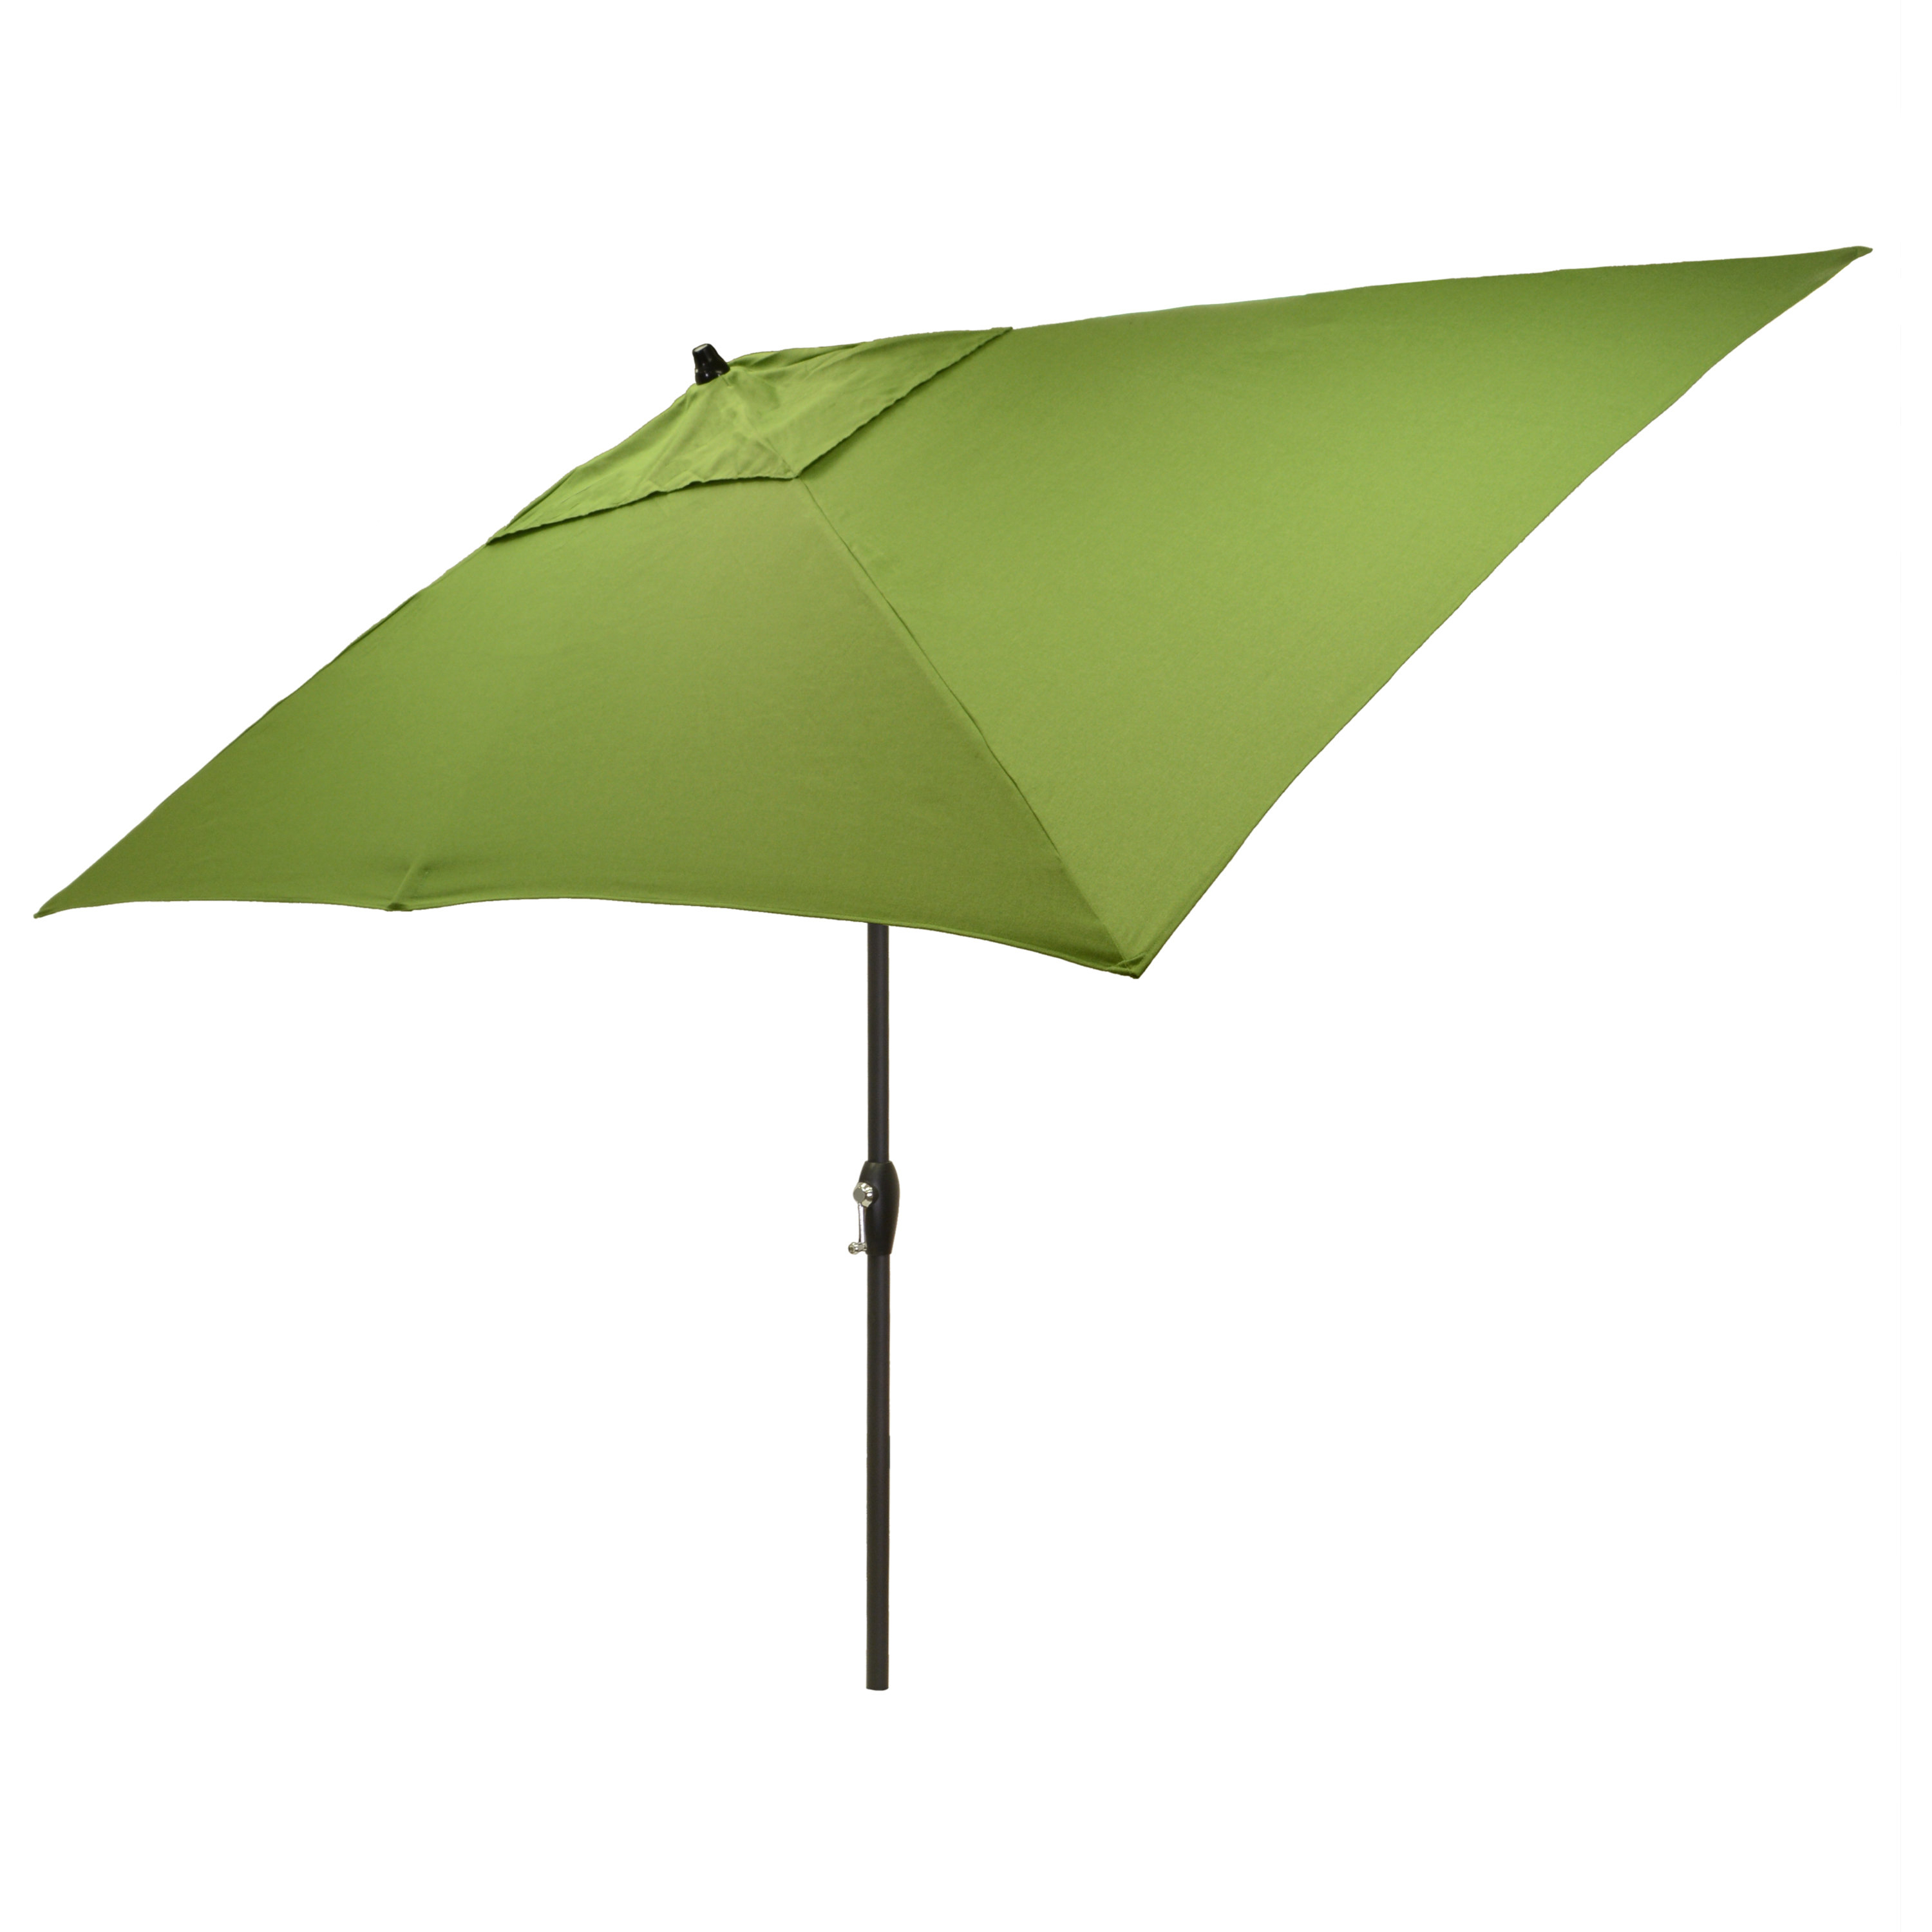 Recent Solid 6.5' X 10' Rectangular Market Umbrella Within Maglione Fabric 4Cantilever Umbrellas (Gallery 7 of 20)